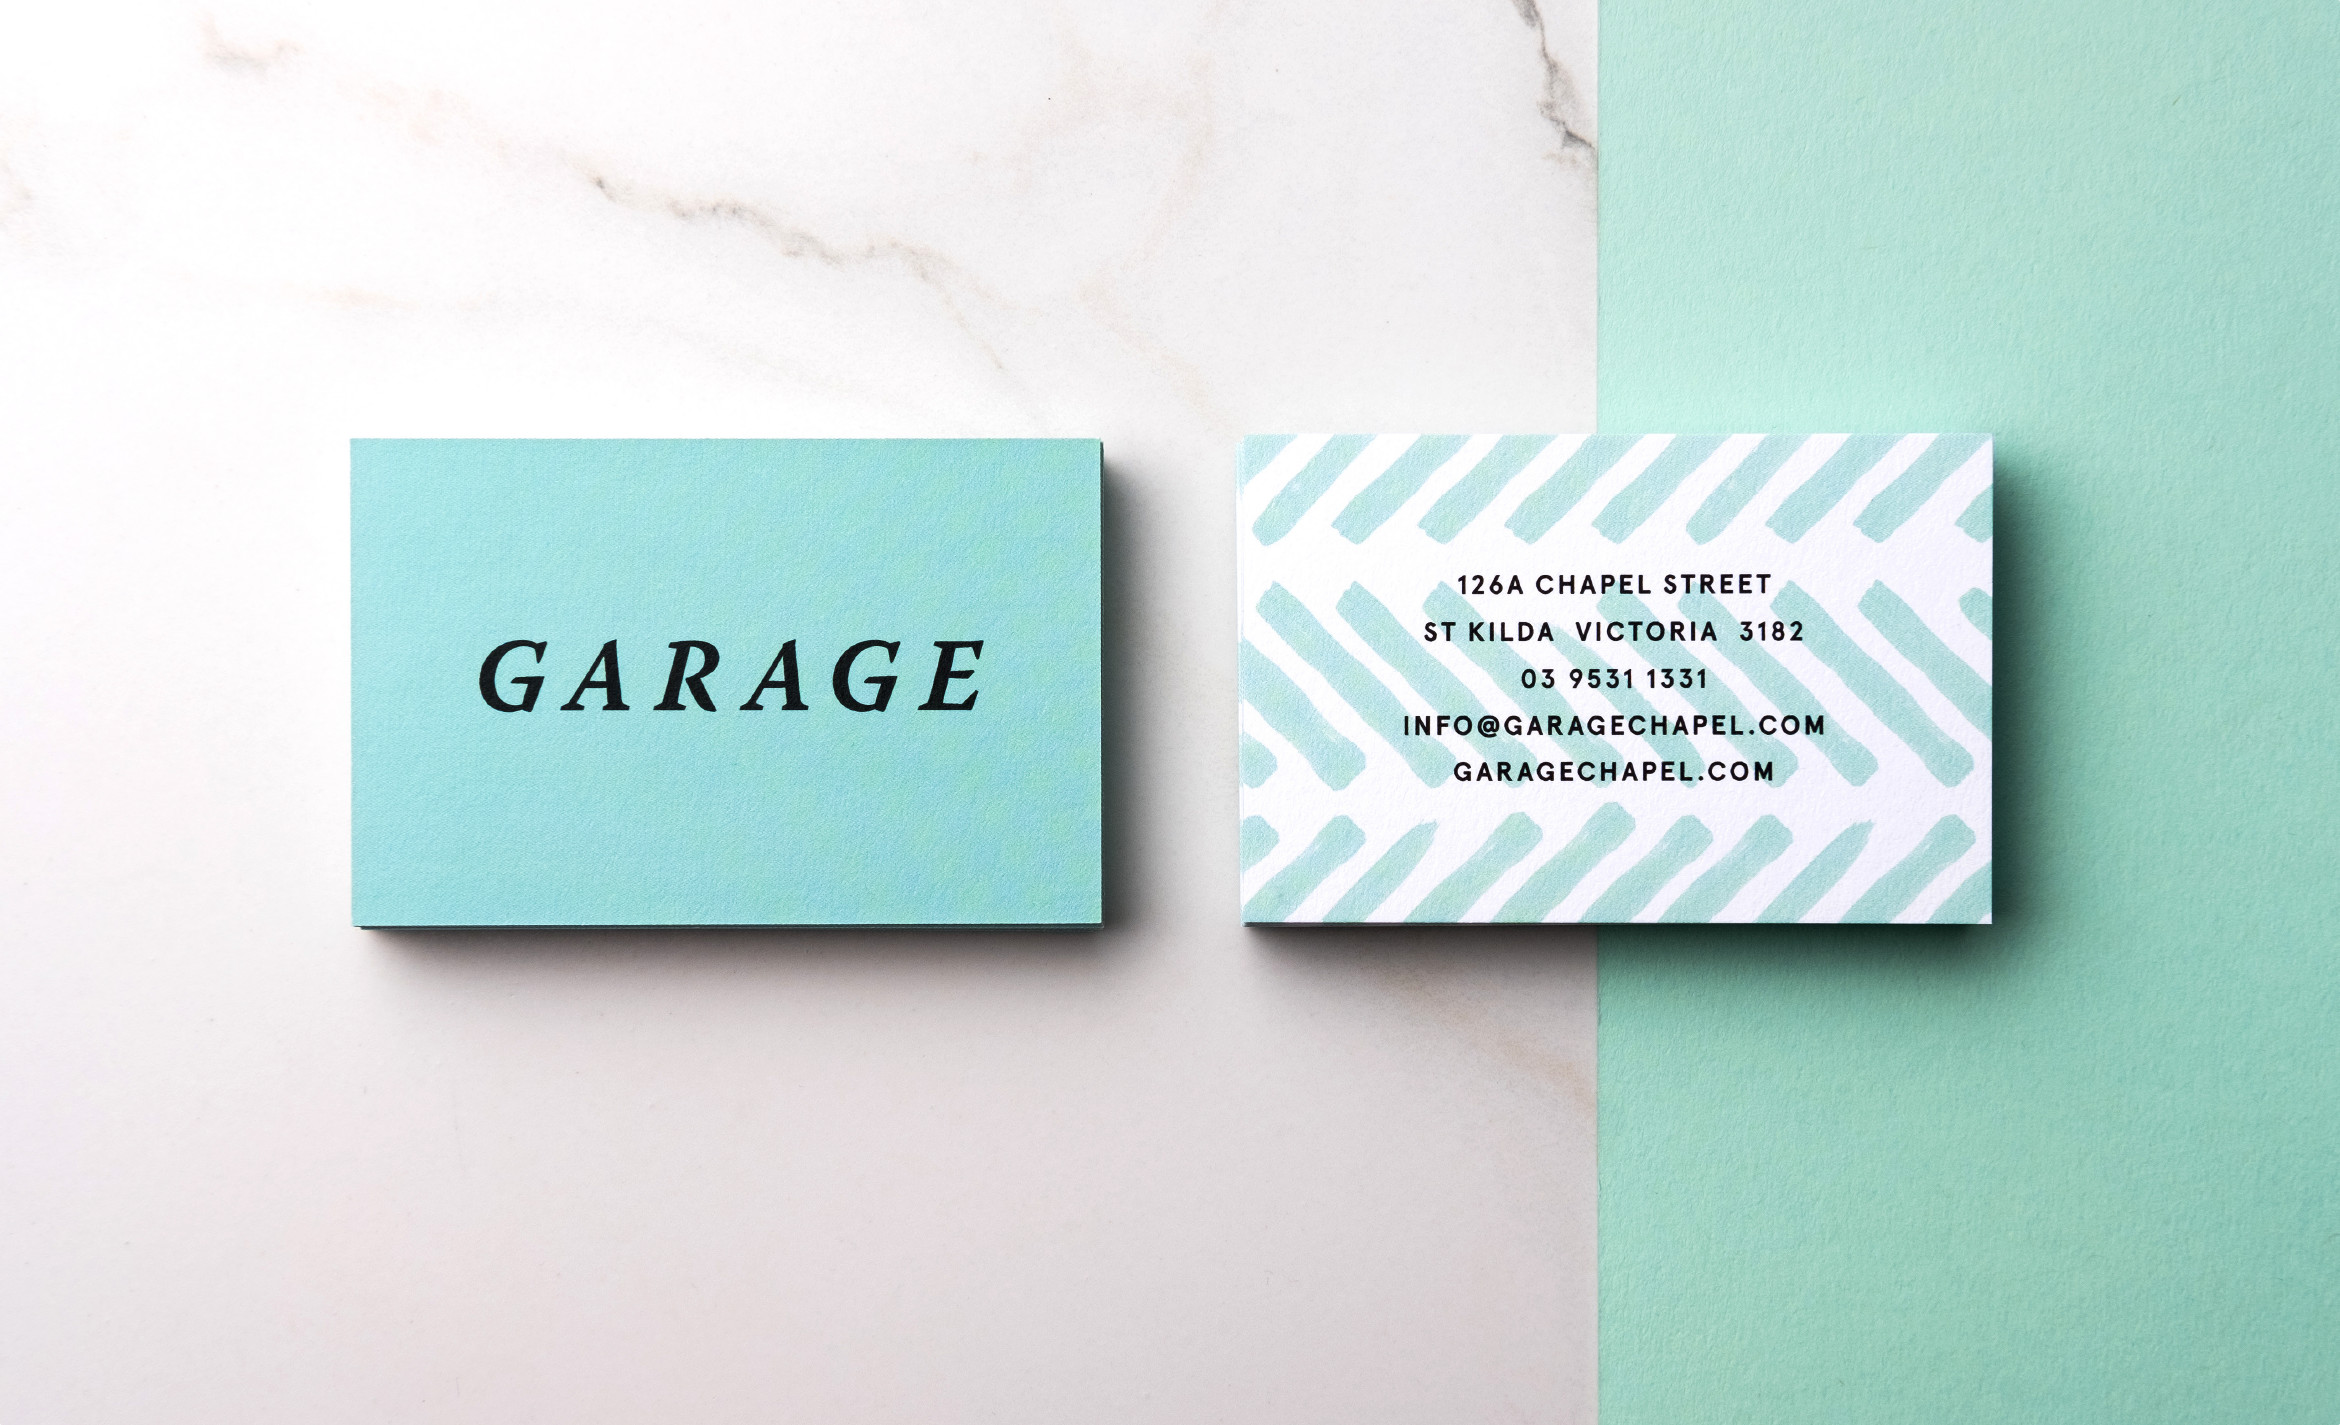 Garage_business_cards